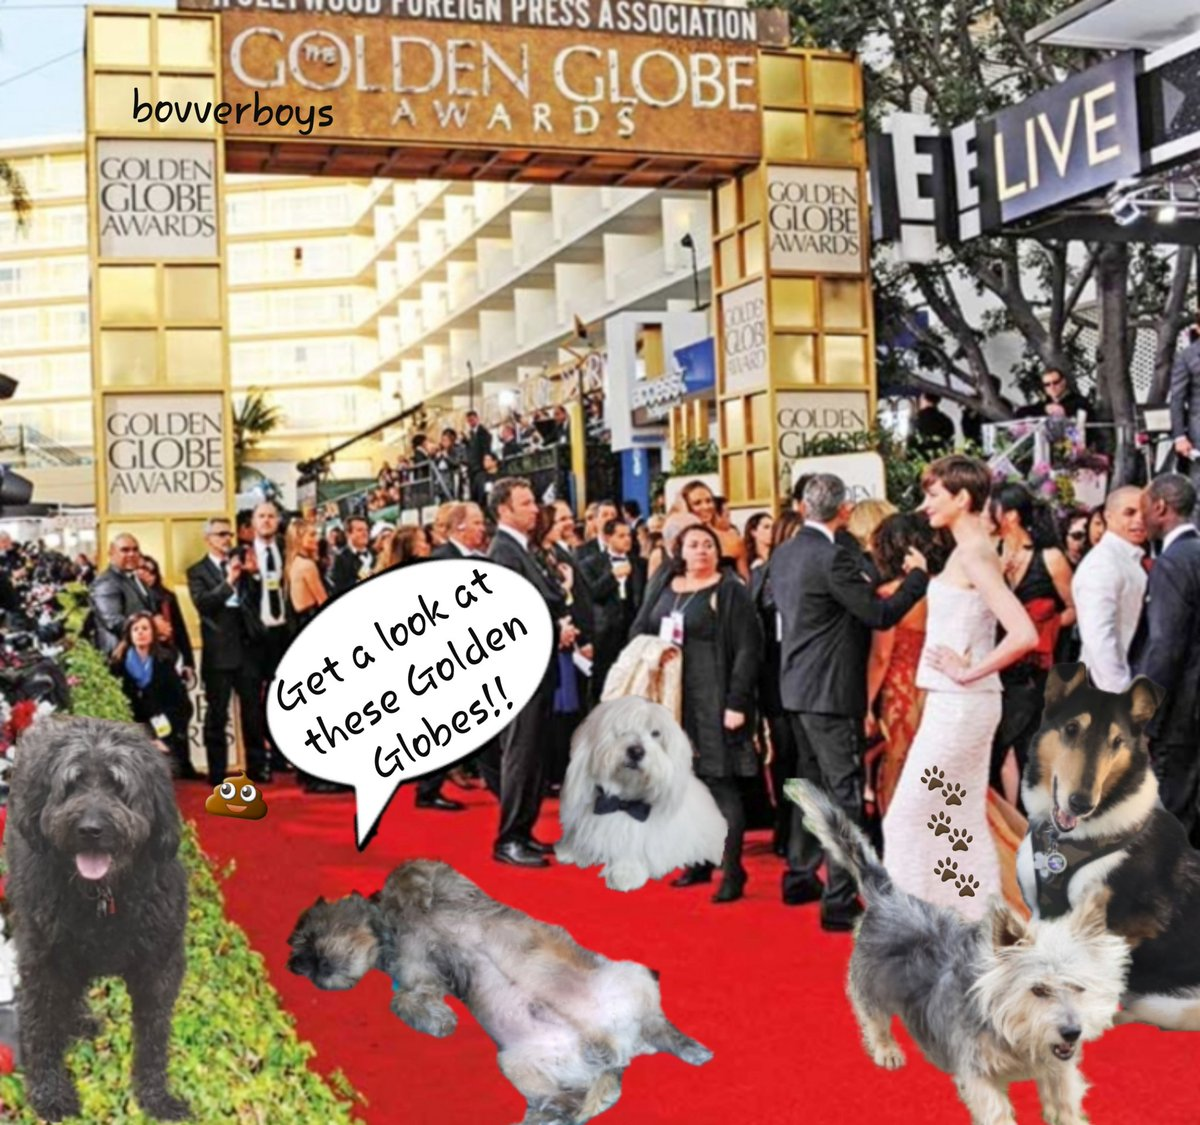 Golden Globes??? If yer want to see some golden globes then take a look at these beauties!!!! #GoldenGlobes #TheRuffRiderz #BovverBoys #Hollywood @jennystape  @CollieTwiggy @OscartheDog_ARM @LJ_doodle #AiringYerBits<br>http://pic.twitter.com/4HpQ9G4ZsZ